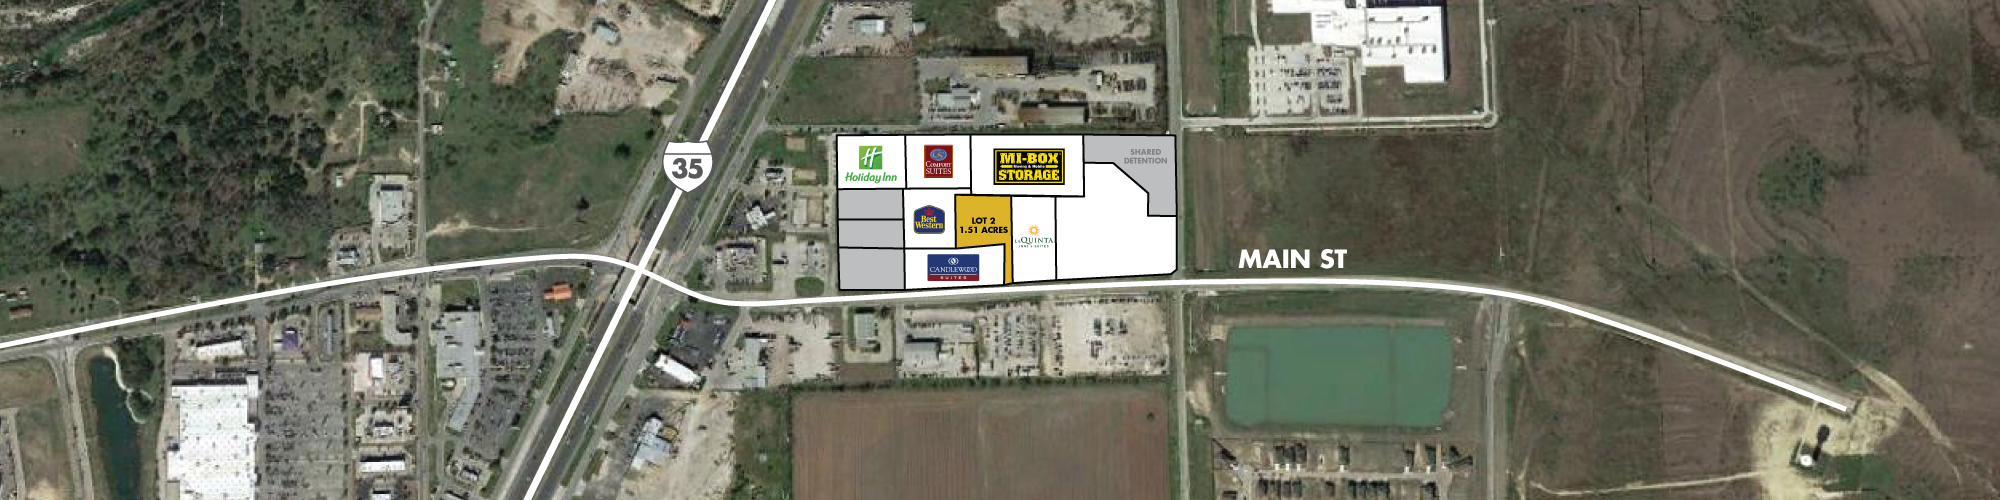 Main Street Pad Sites | Interstate 35 and Main Street